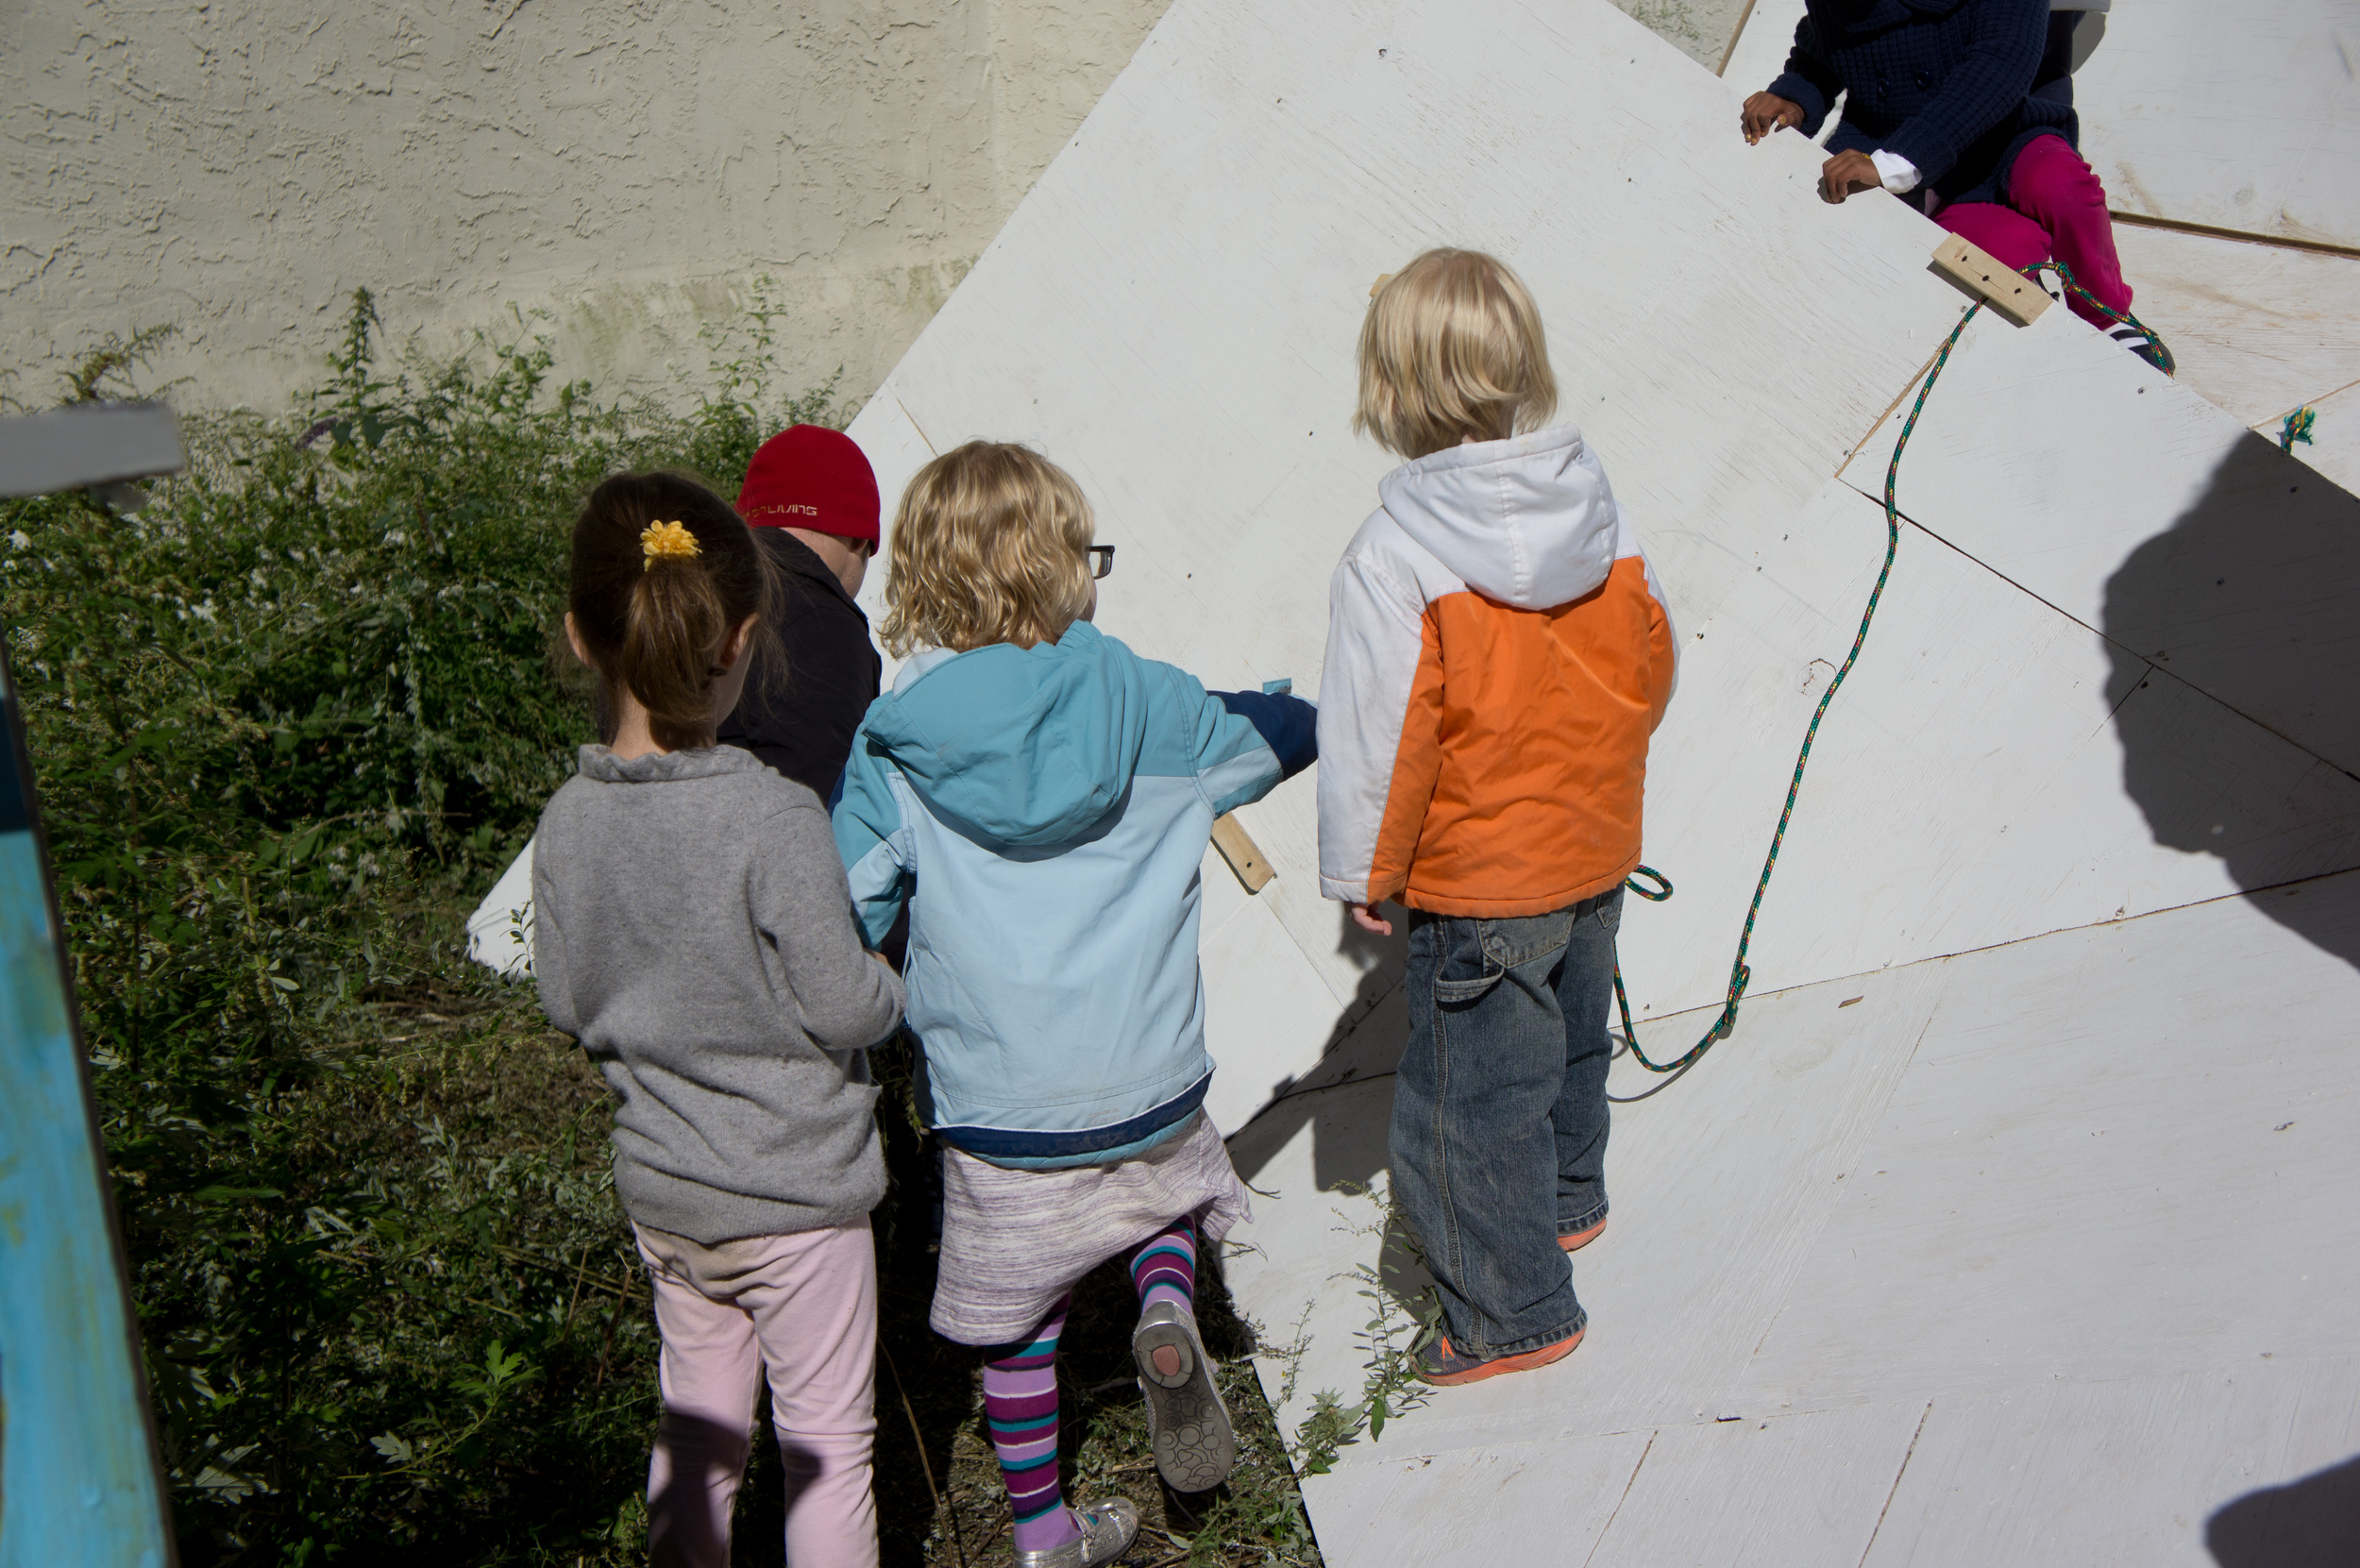 With a little aid from a father, these little ones crafted their own custom climbing wall.